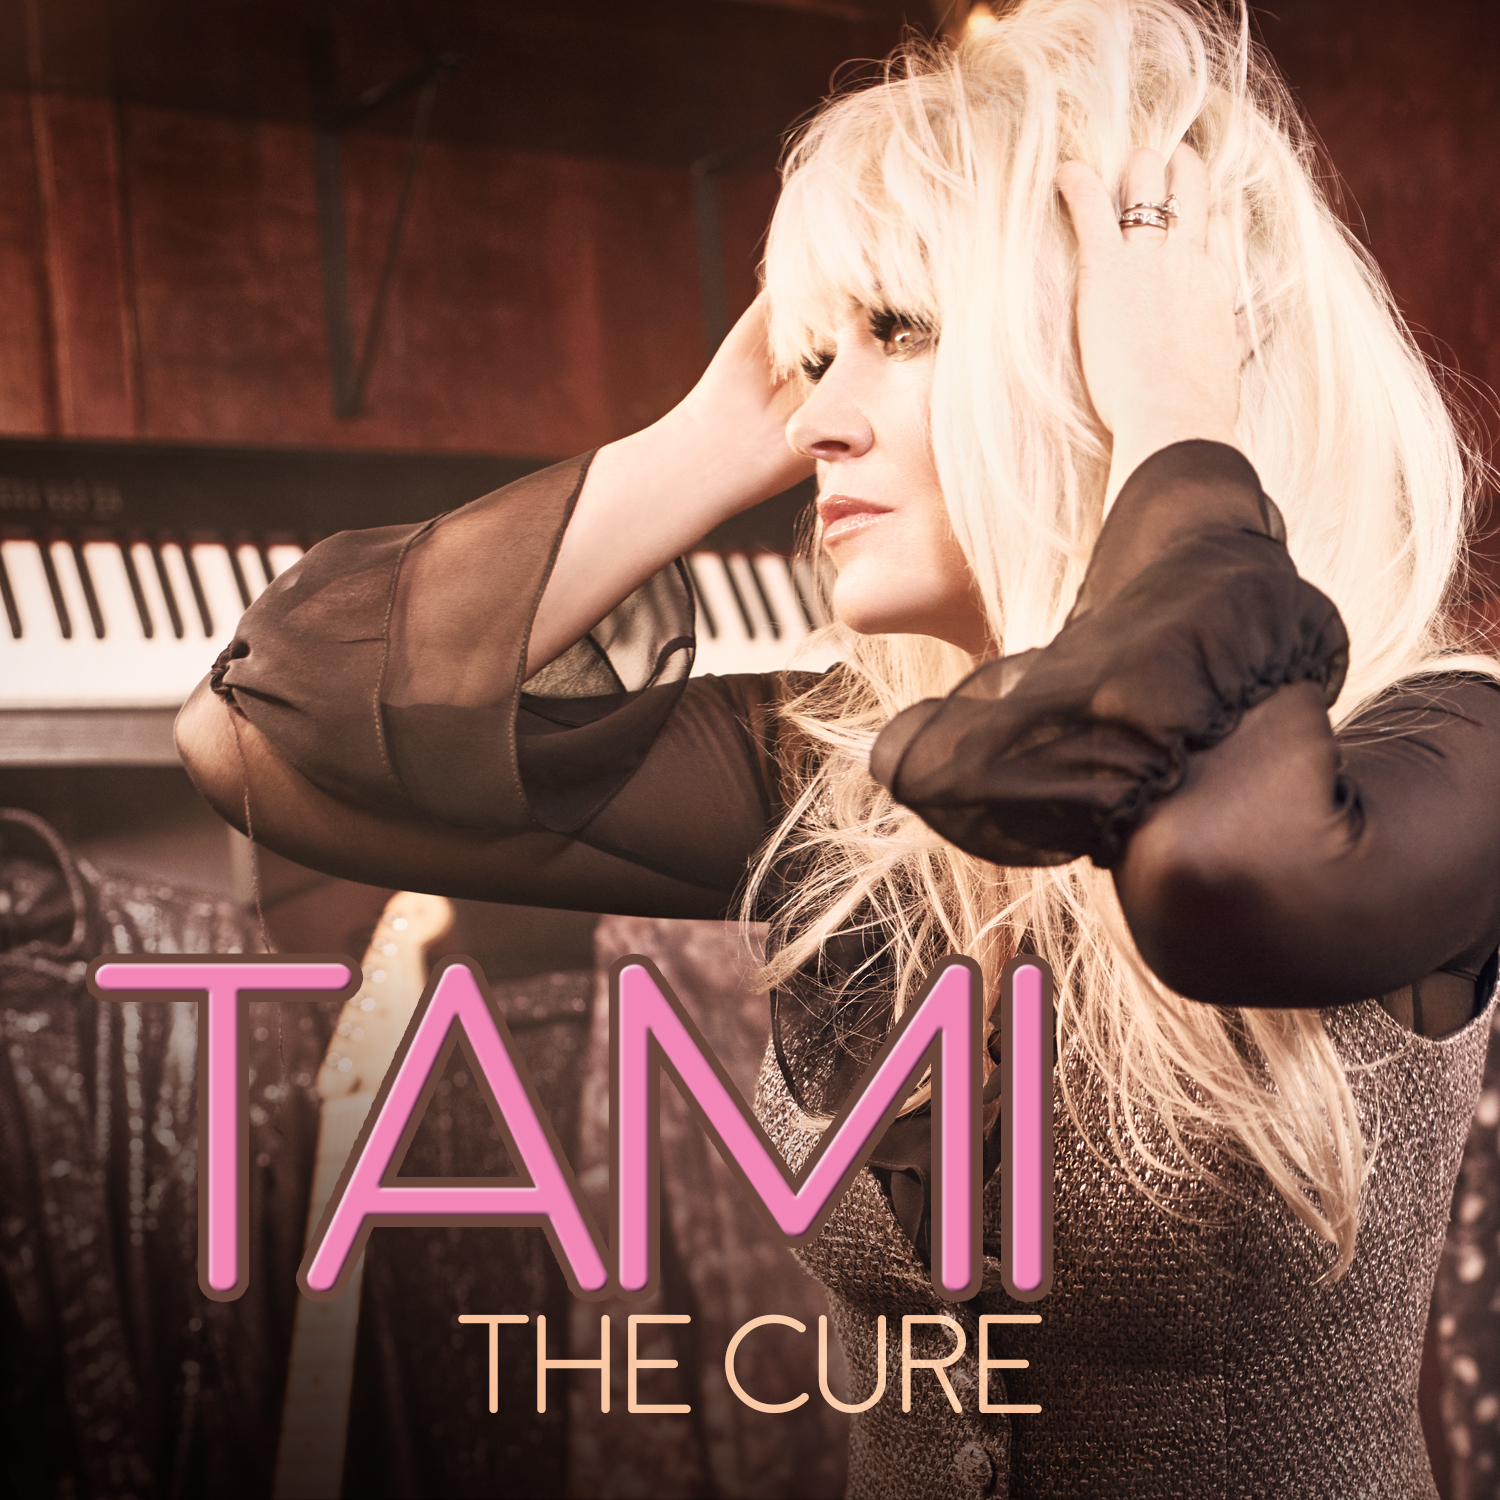 Tami_THECURE_08.jpg